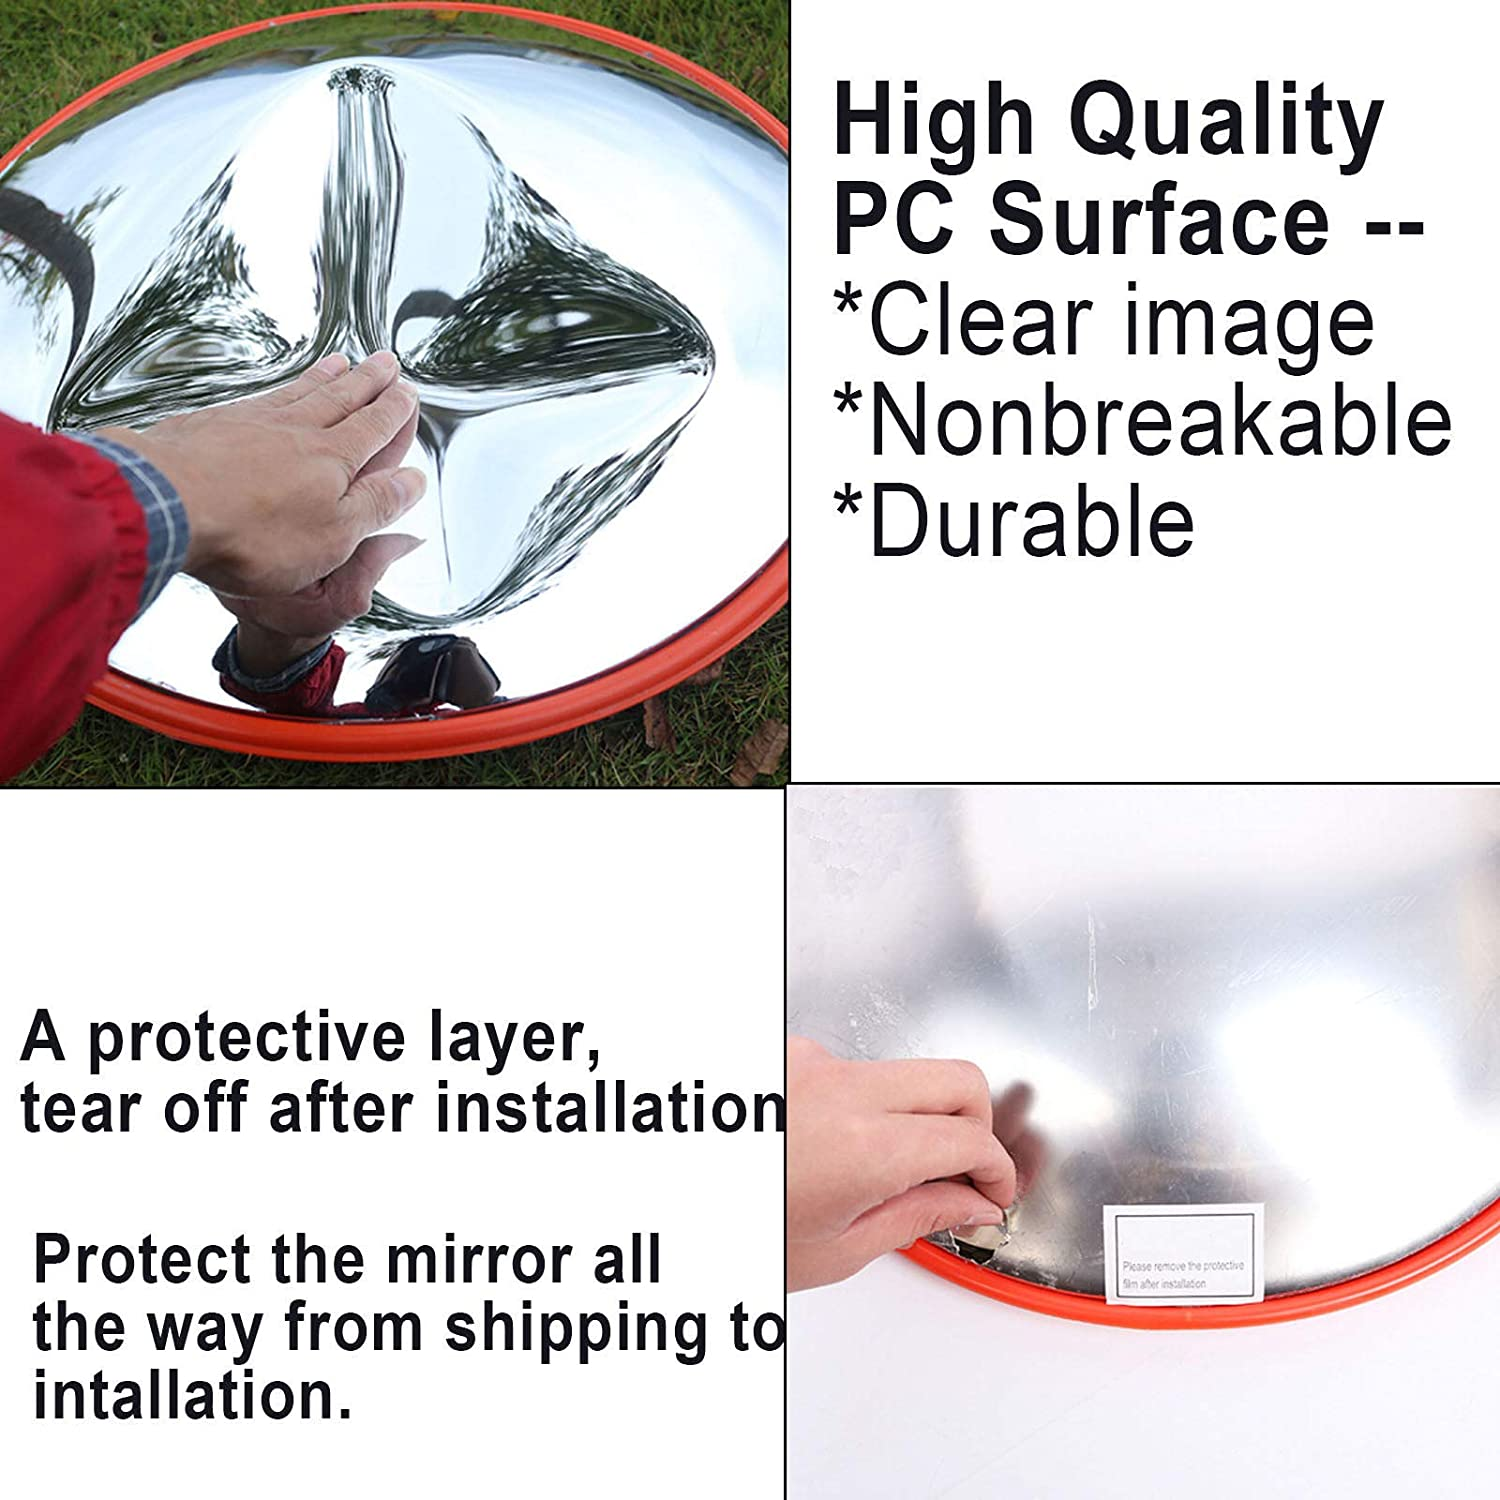 24 Convex Traffic mirror For Road Safety And Shop Security With Adjustable Fixing Bracket Diameter 60cm